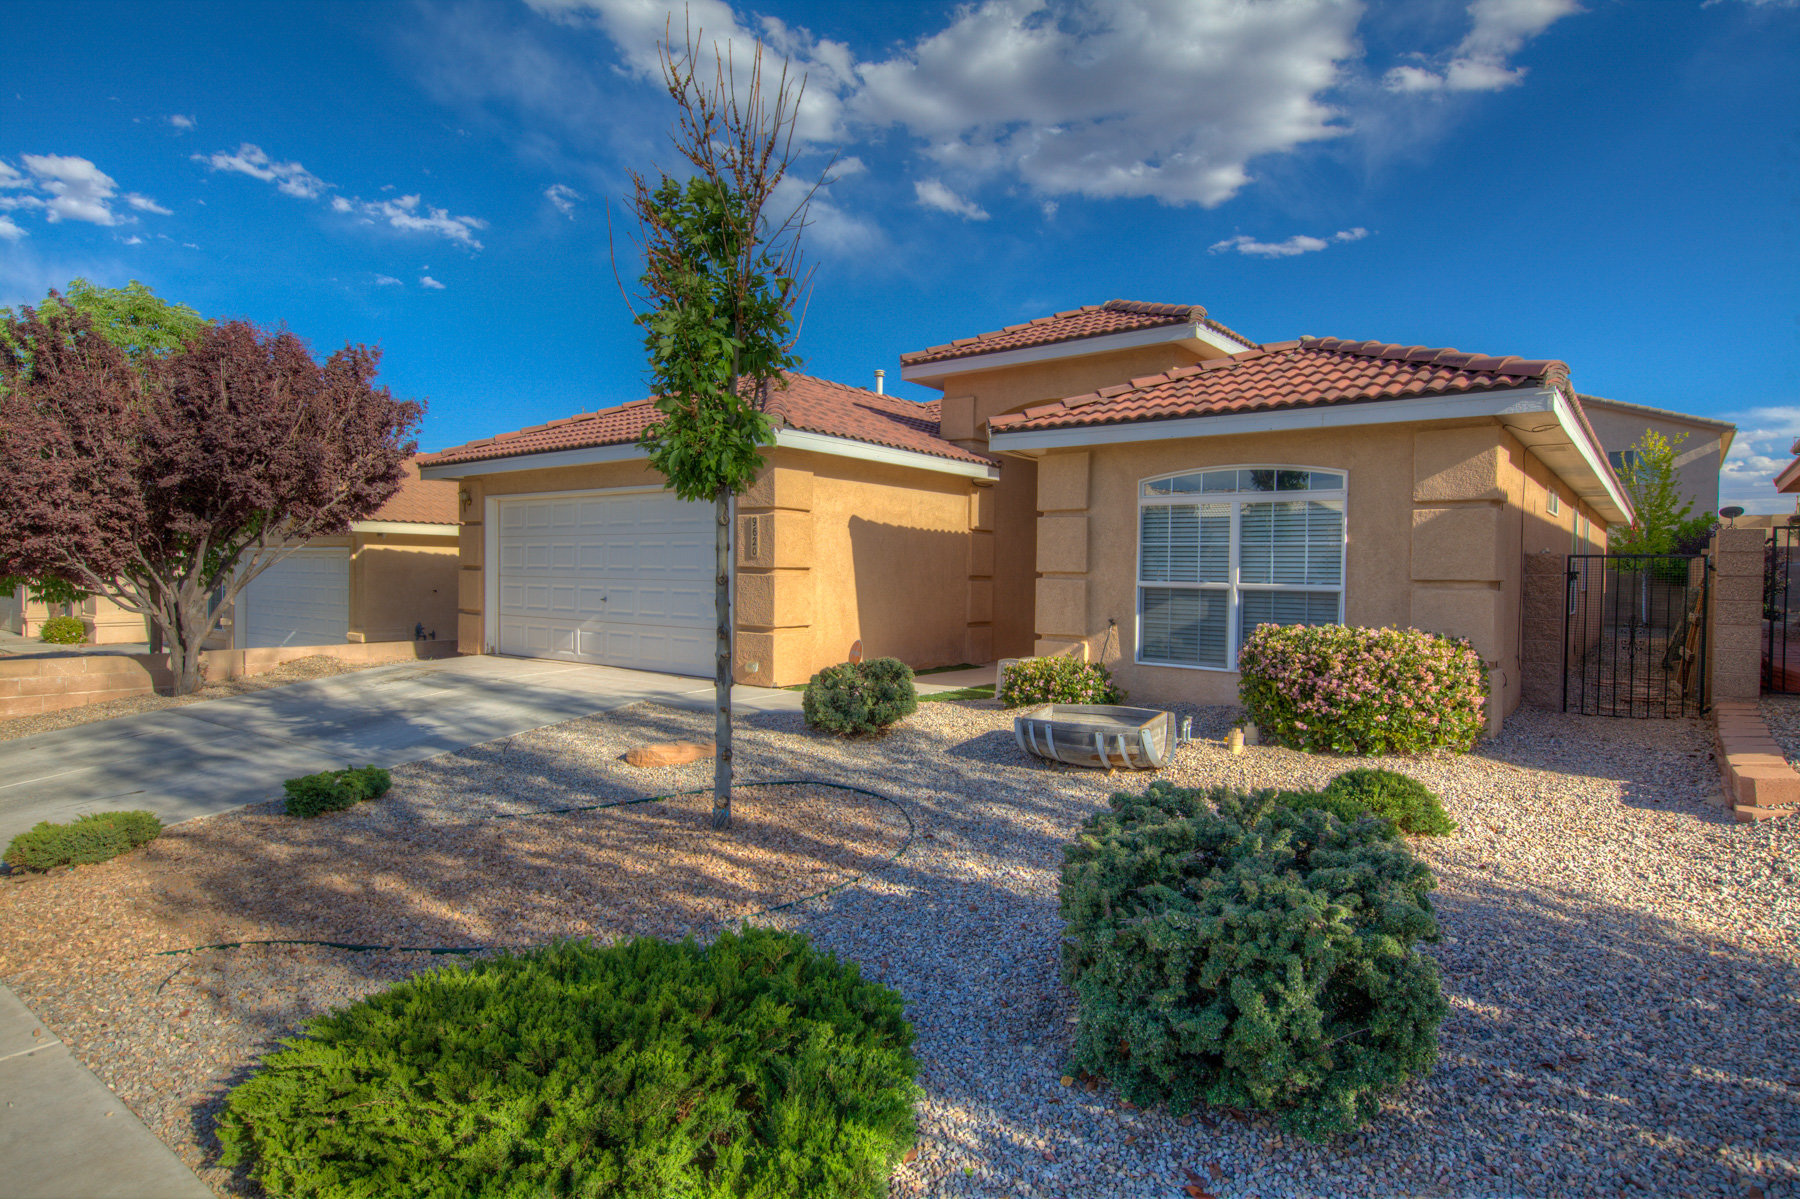 9620 Kilauea Avenue NW, Albuquerque, NM 87120